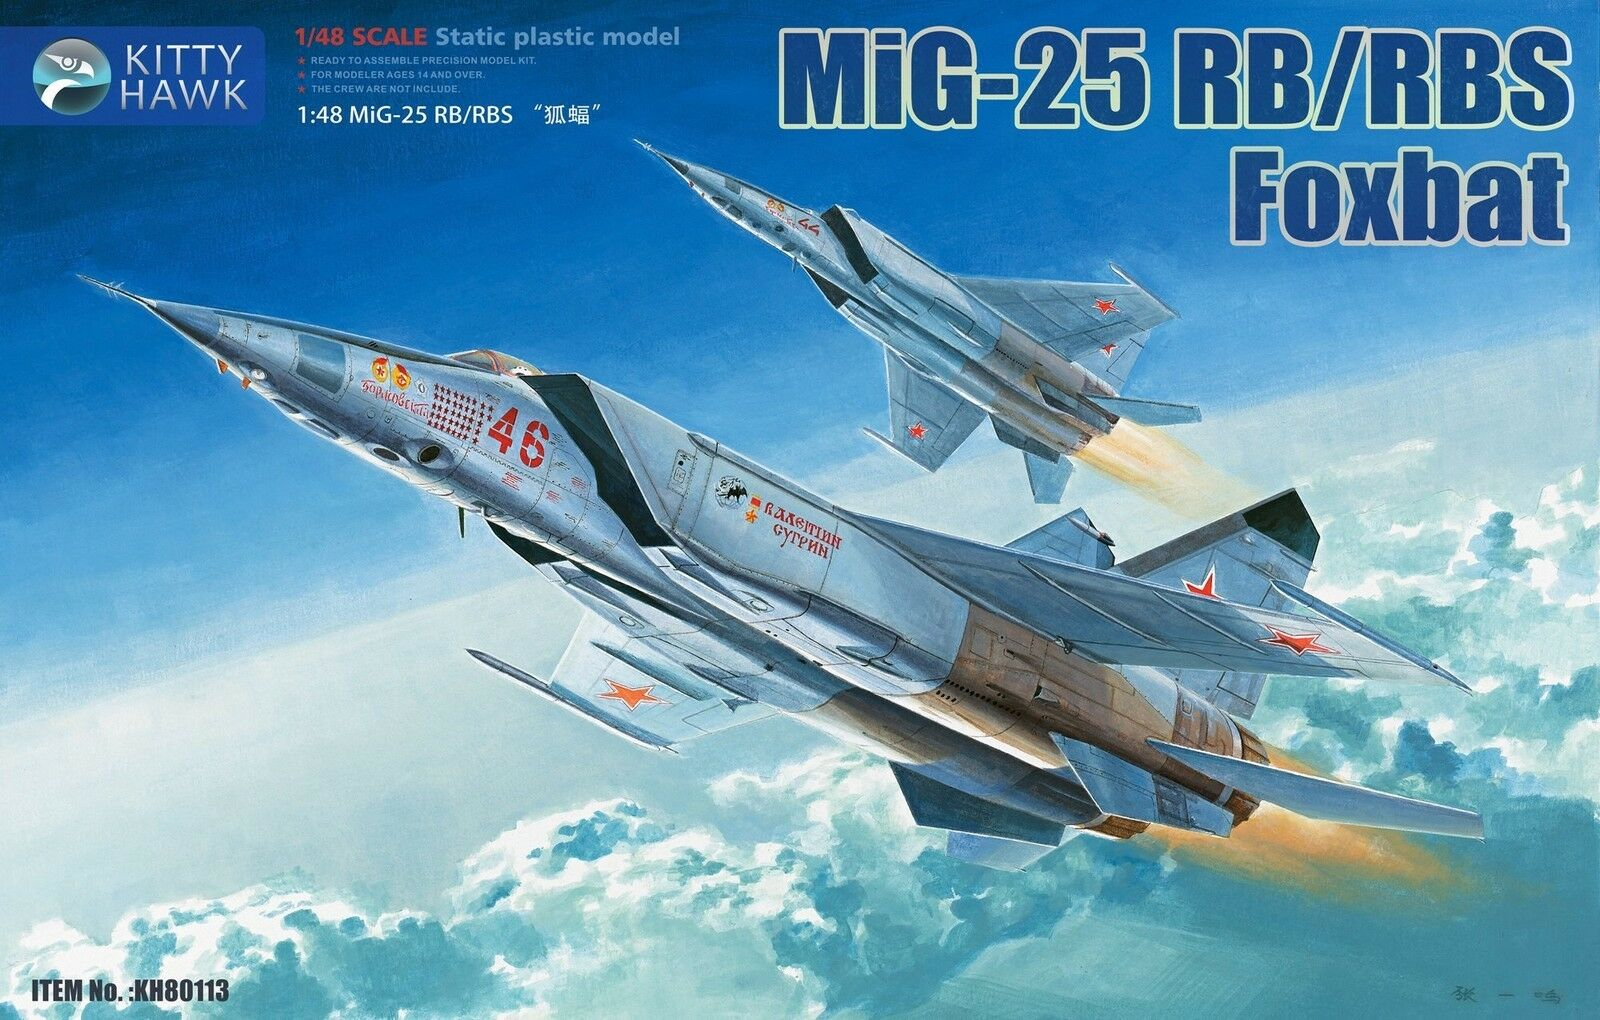 Kitty Hawk 1 48 MiG-25RB RBS  Foxbat